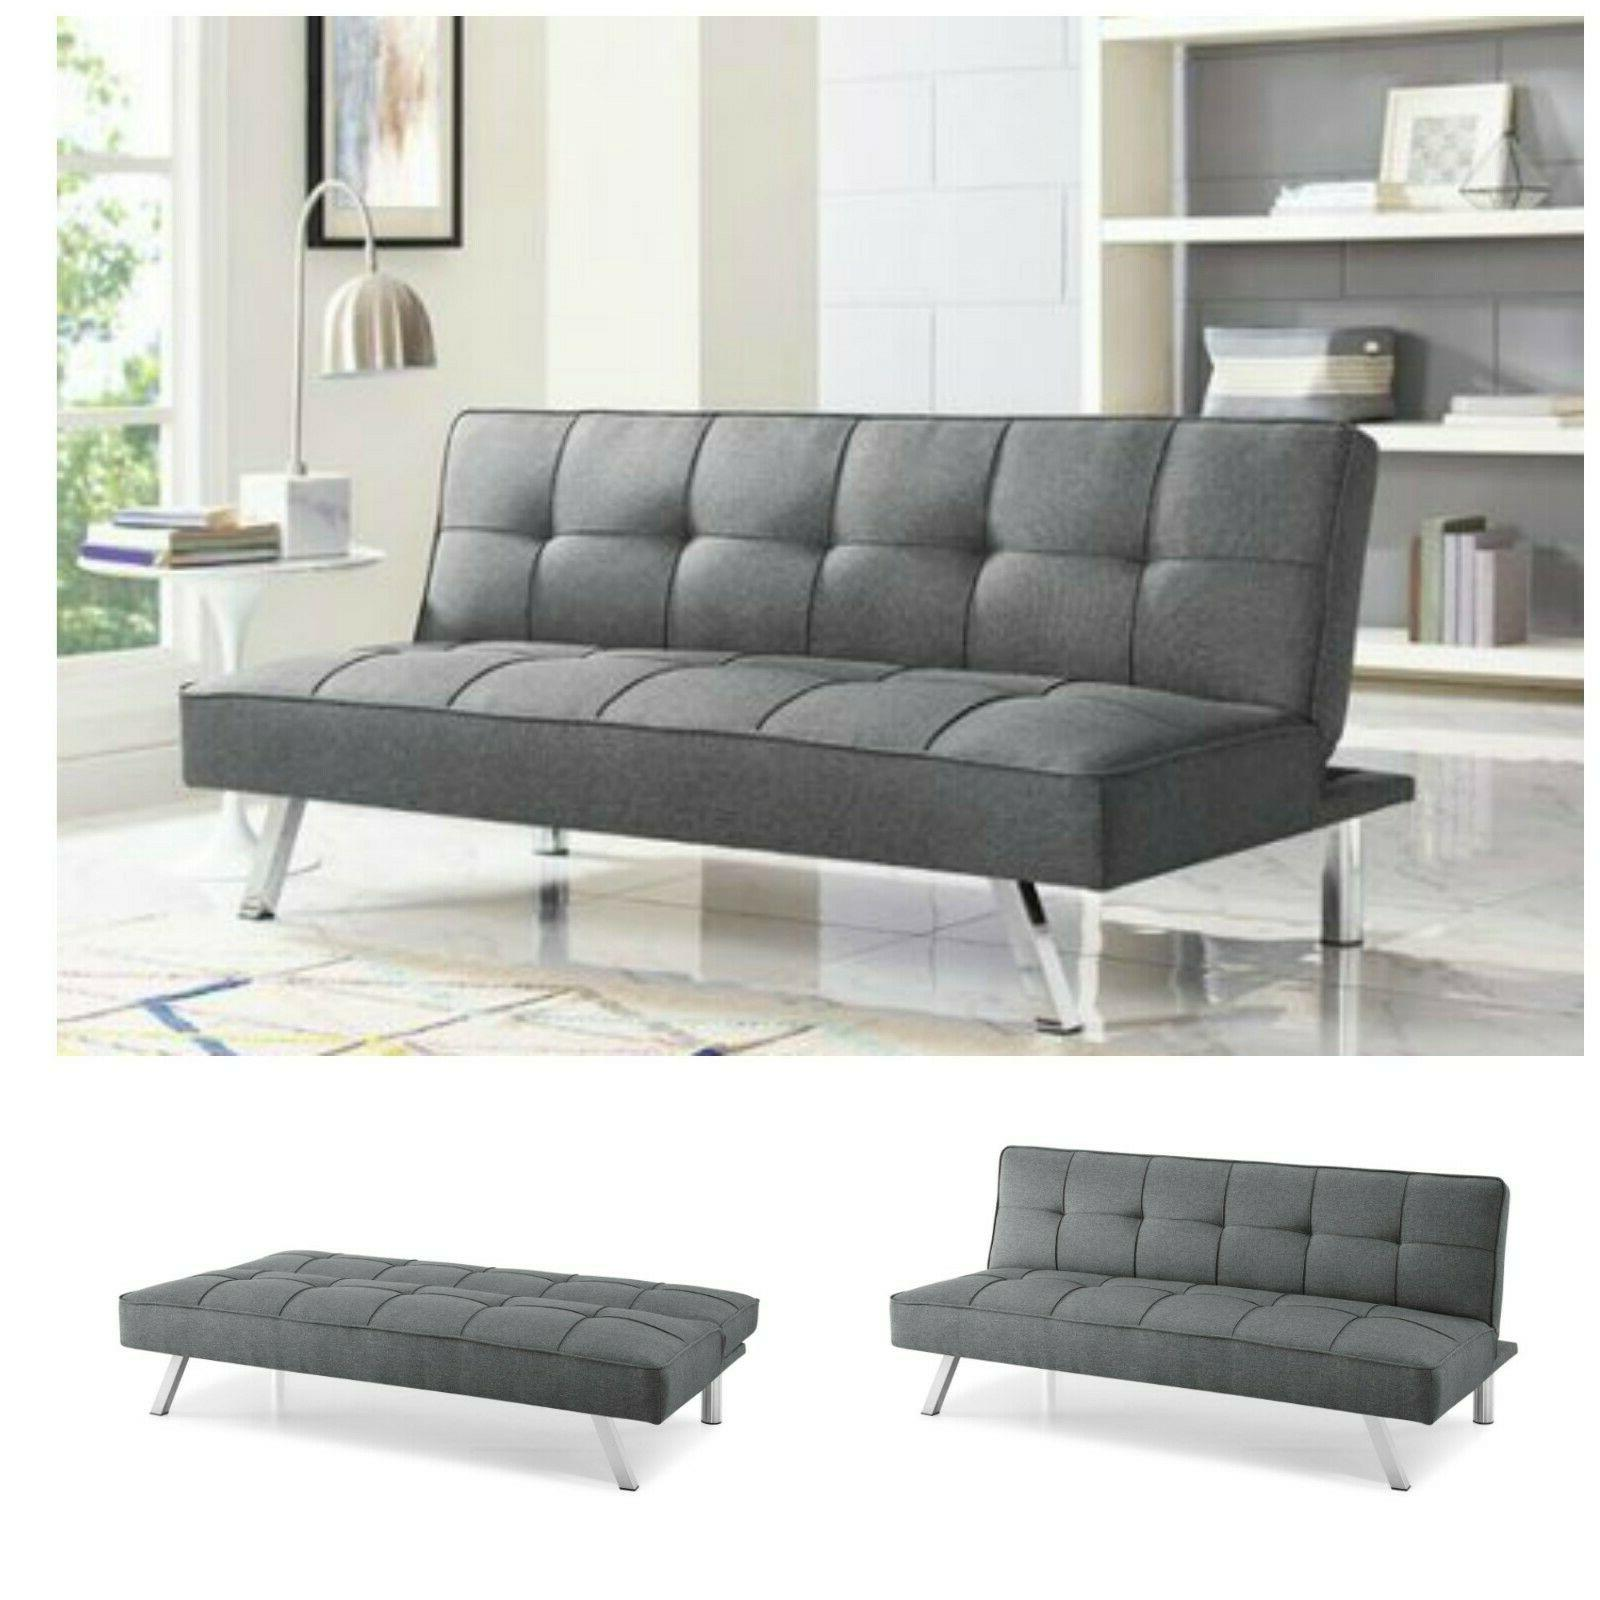 sleeper sofa bed grey gray convertible couch